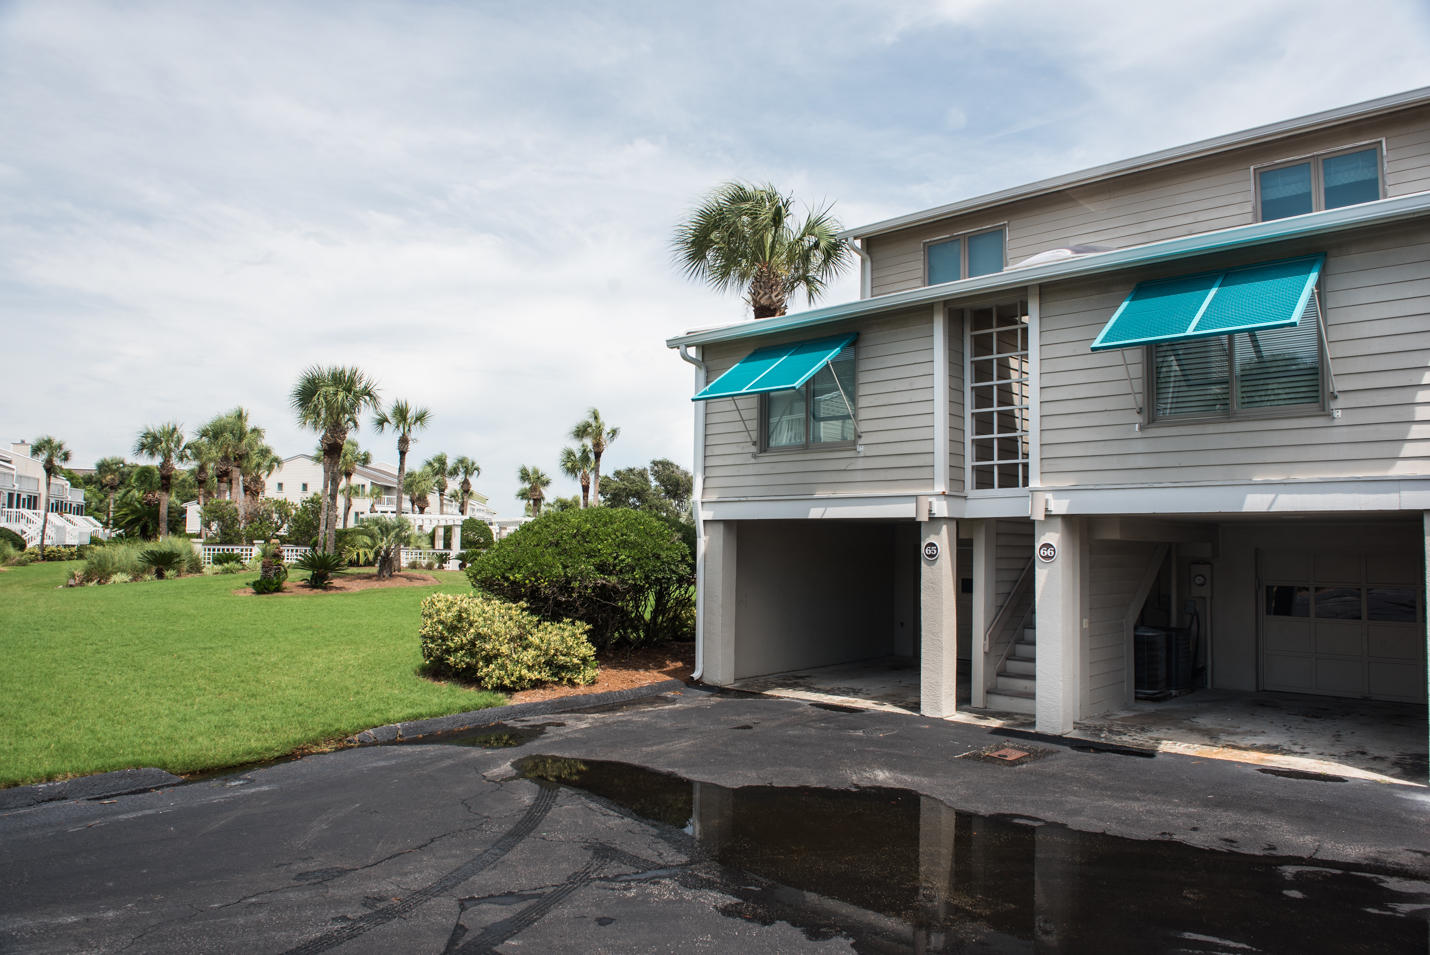 Beach Club Villas Homes For Sale - 66 Beach Club Villas, Isle of Palms, SC - 12